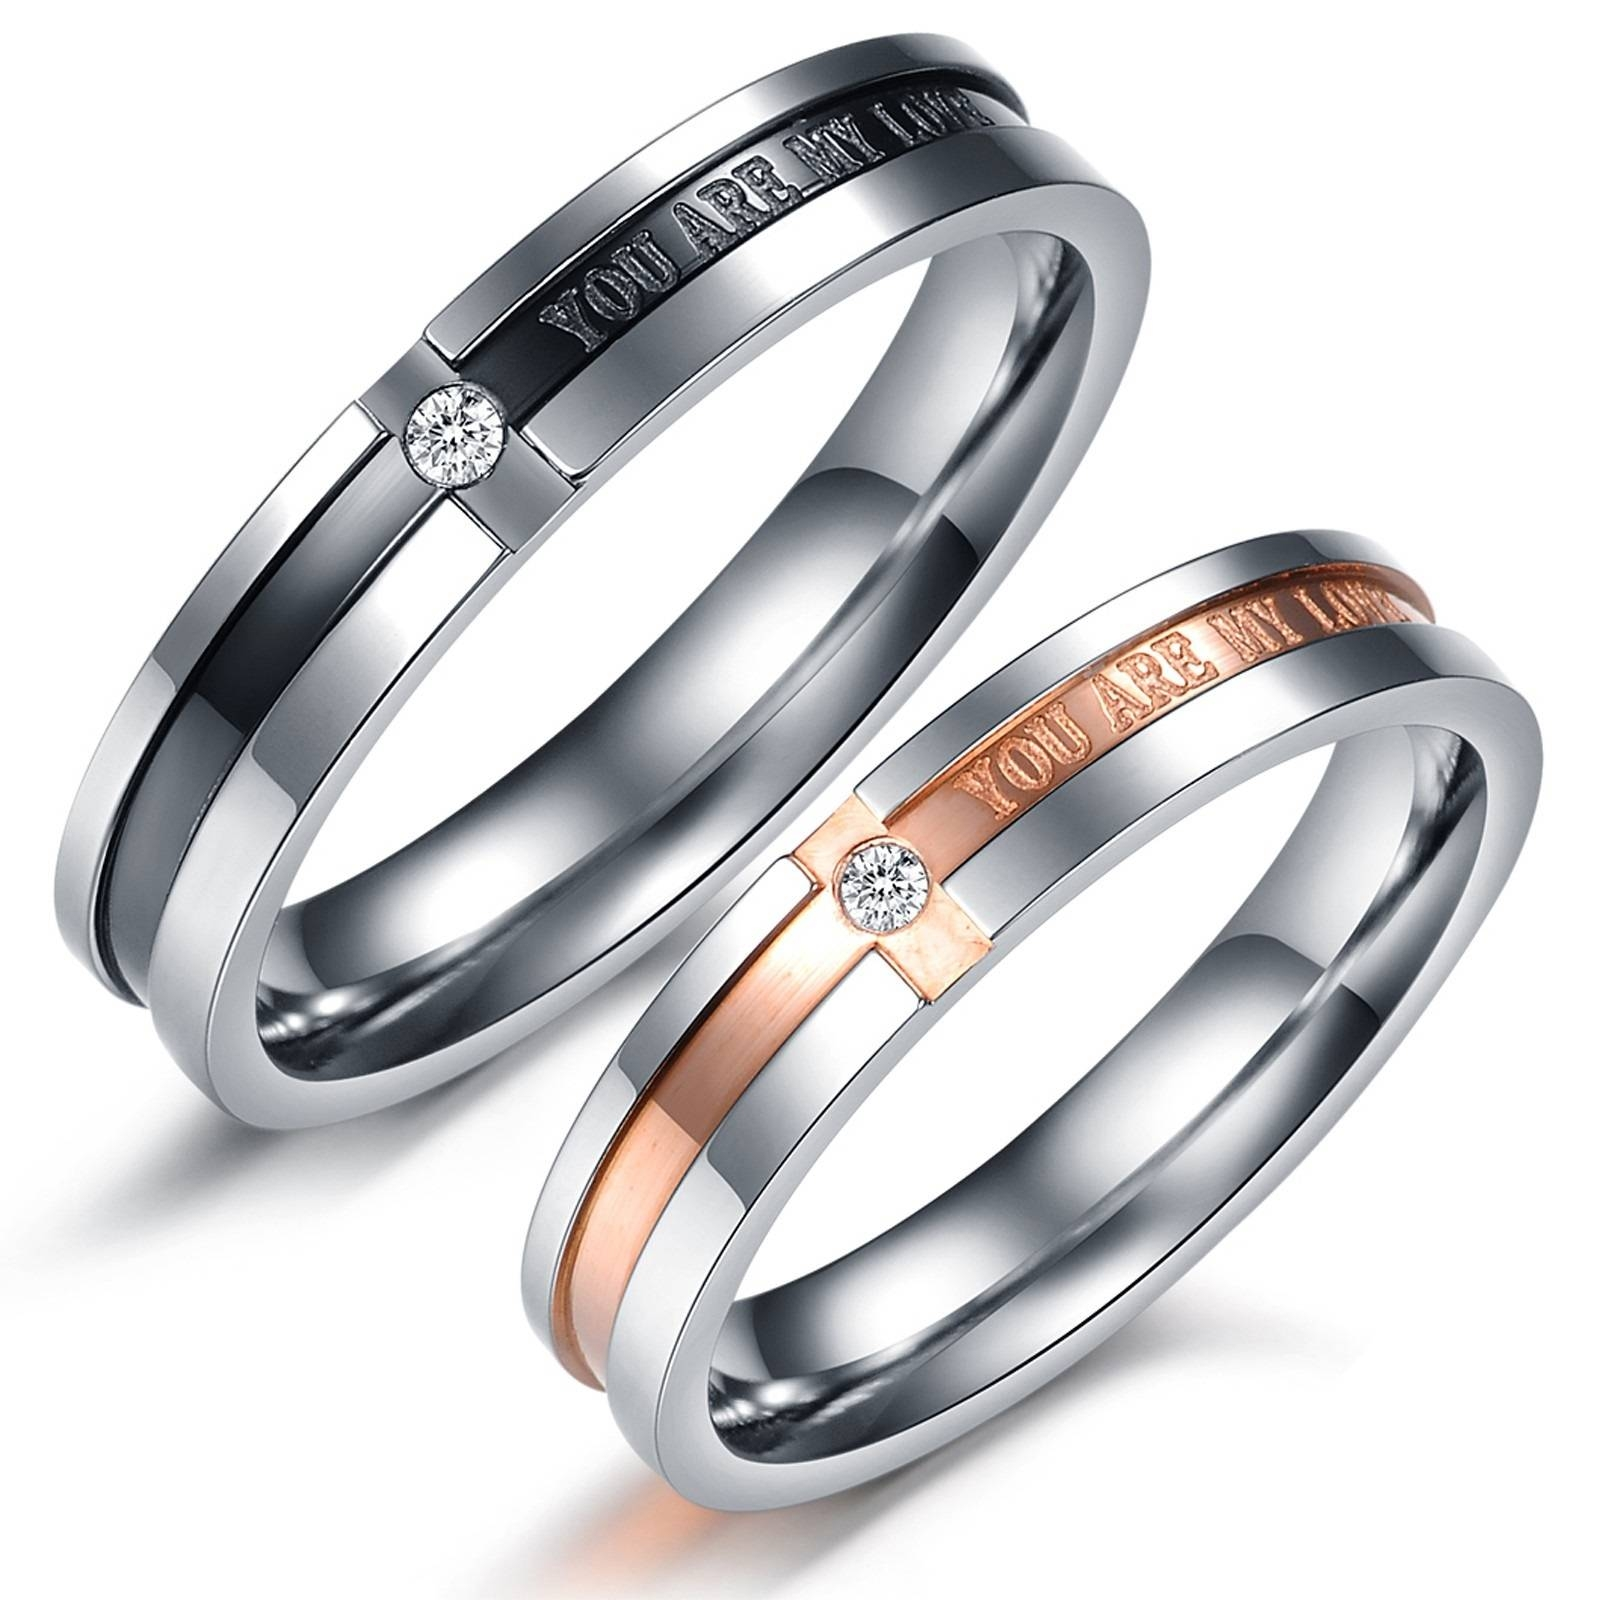 Matching Couple Titanium Steel Engagement Promise Ring Wedding Within Current Couples Anniversary Rings (Gallery 15 of 25)